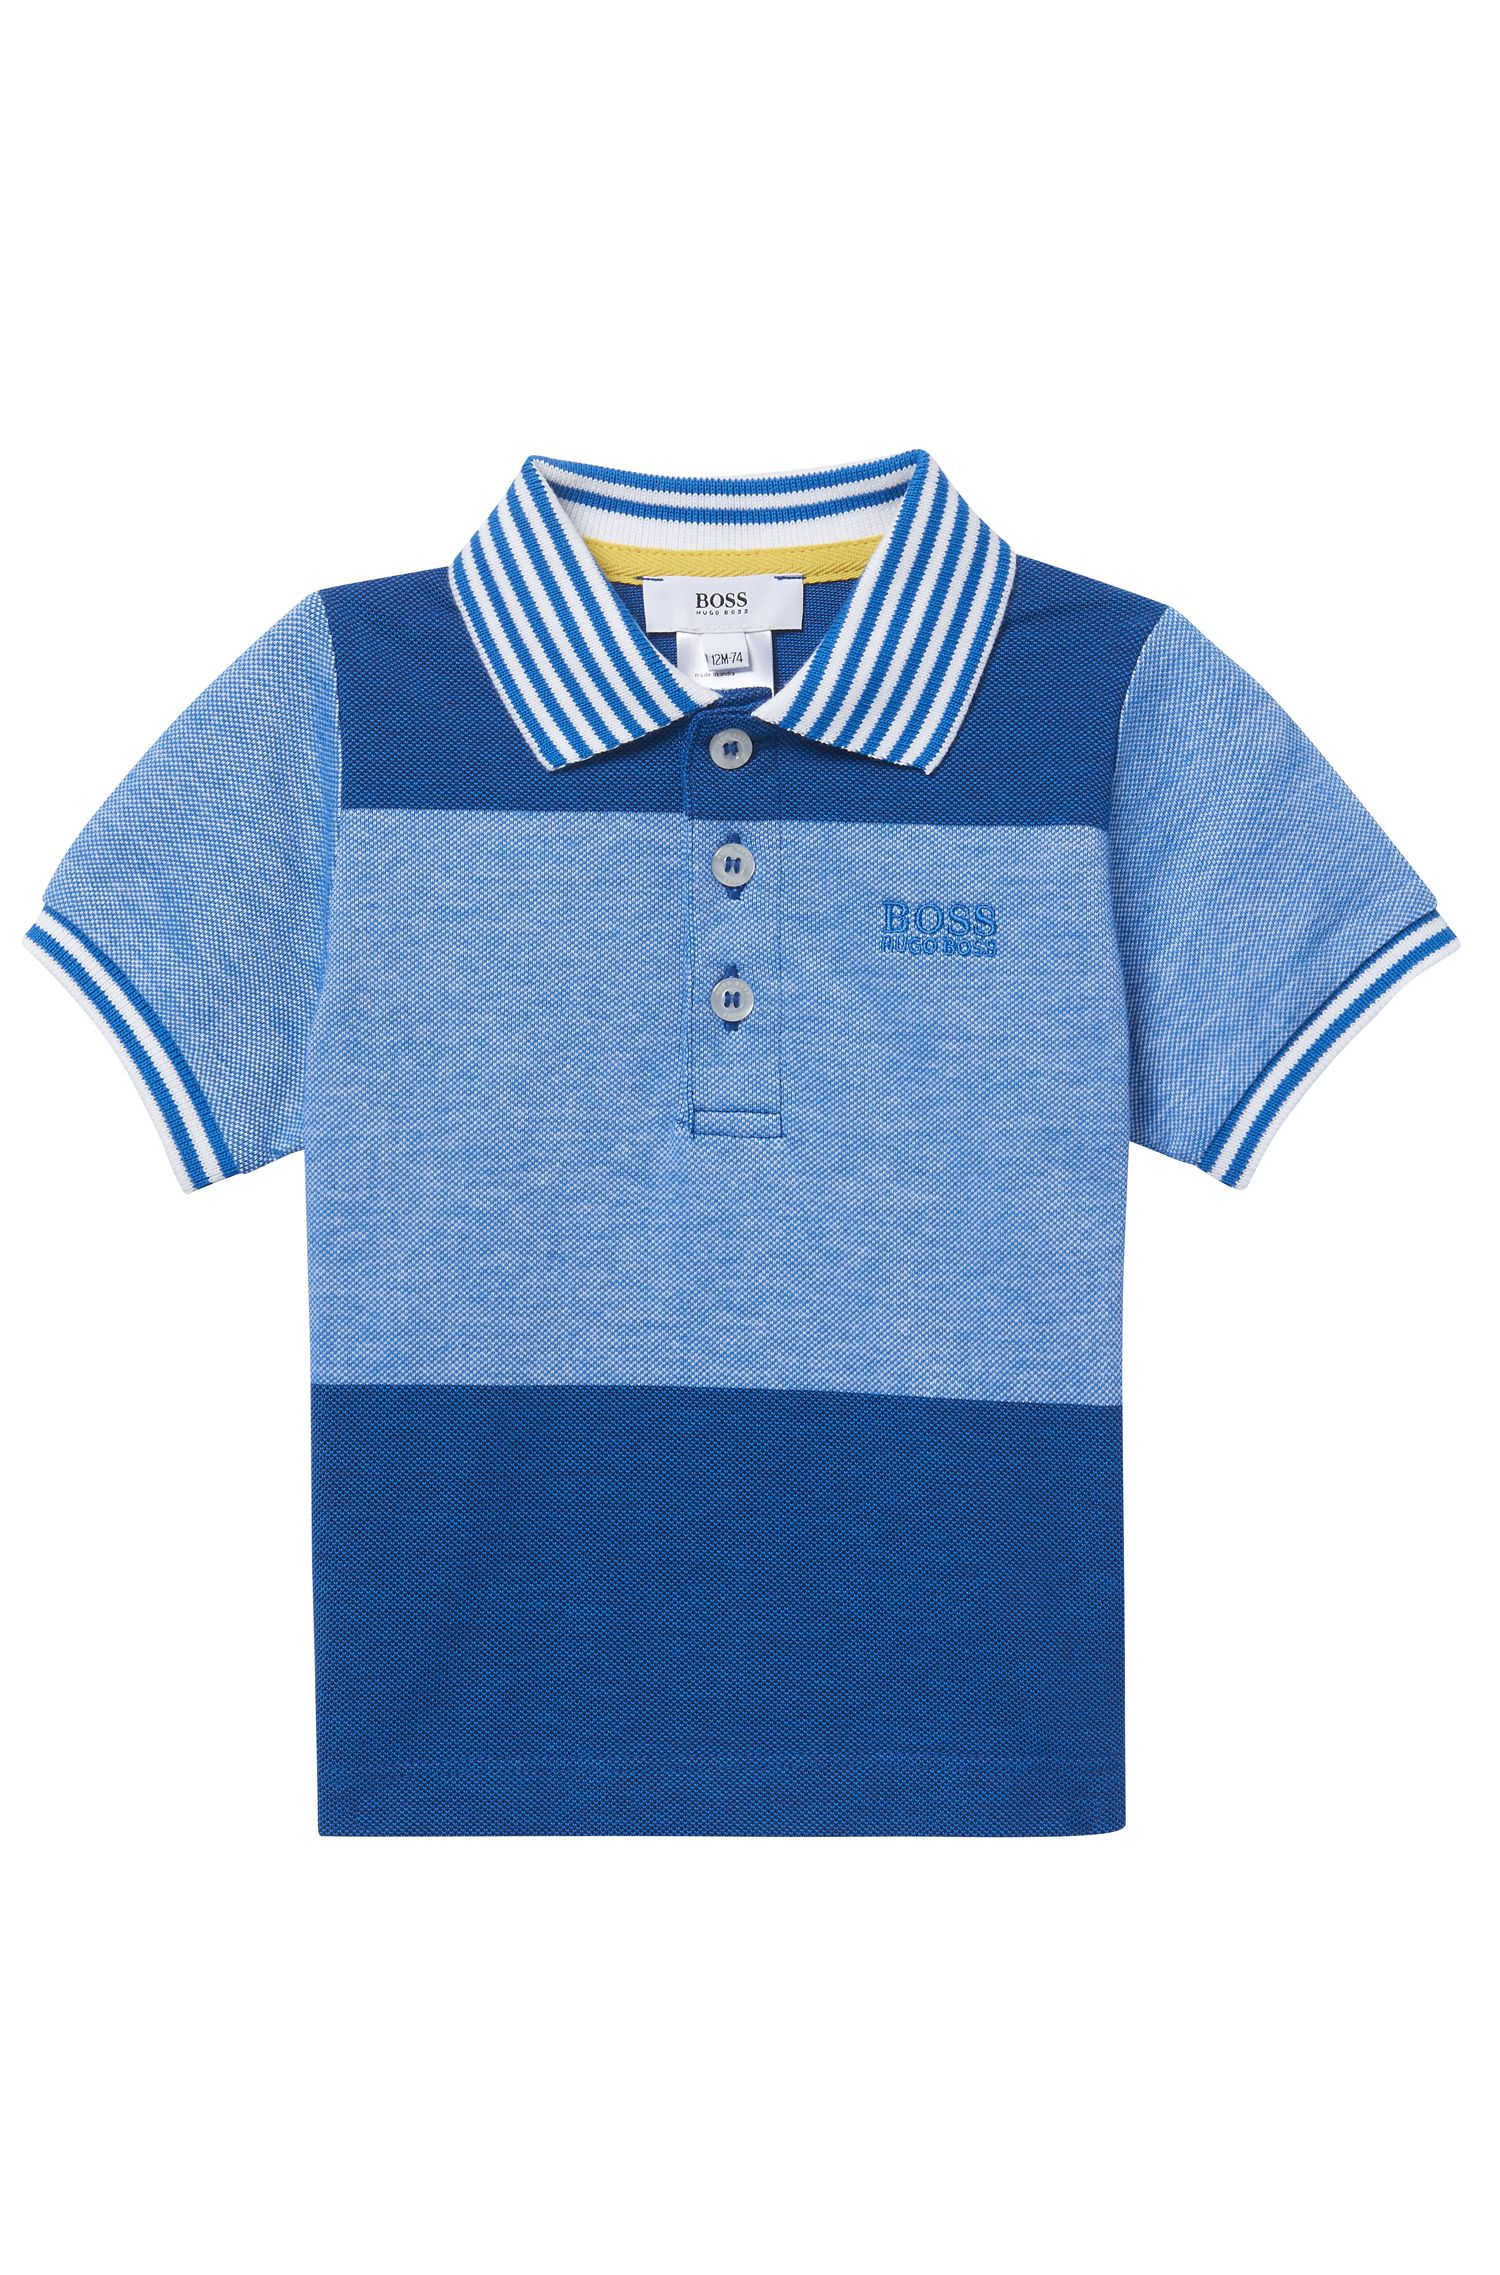 'J05495' | Toddler Stretch Cotton Pique Polo